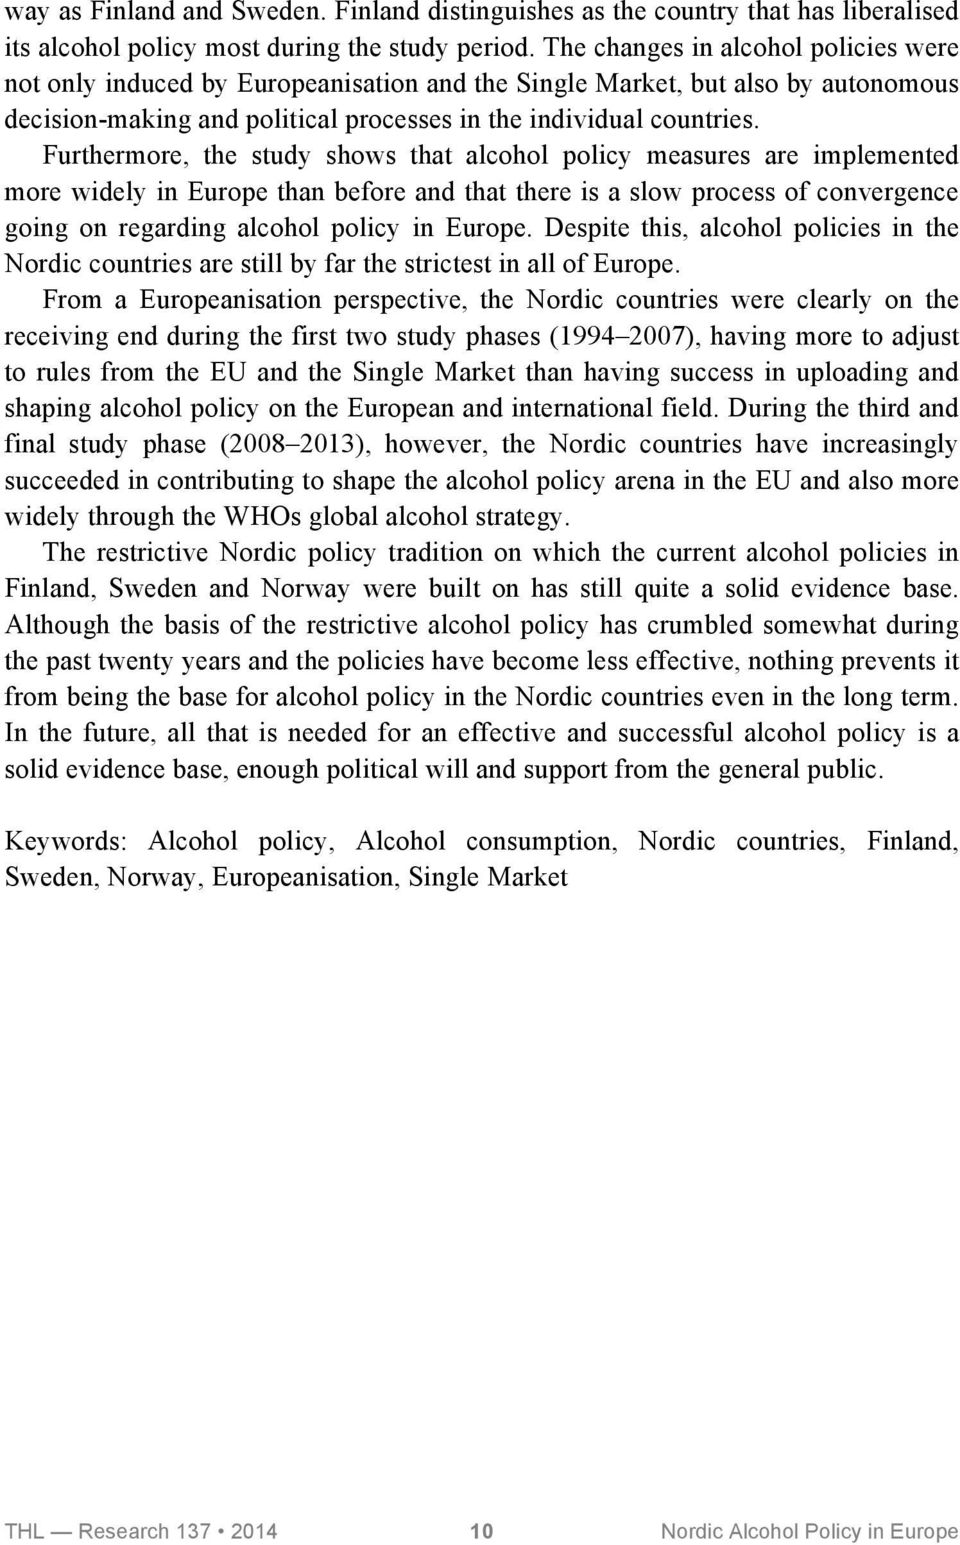 Furthermore, the study shows that alcohol policy measures are implemented more widely in Europe than before and that there is a slow process of convergence going on regarding alcohol policy in Europe.